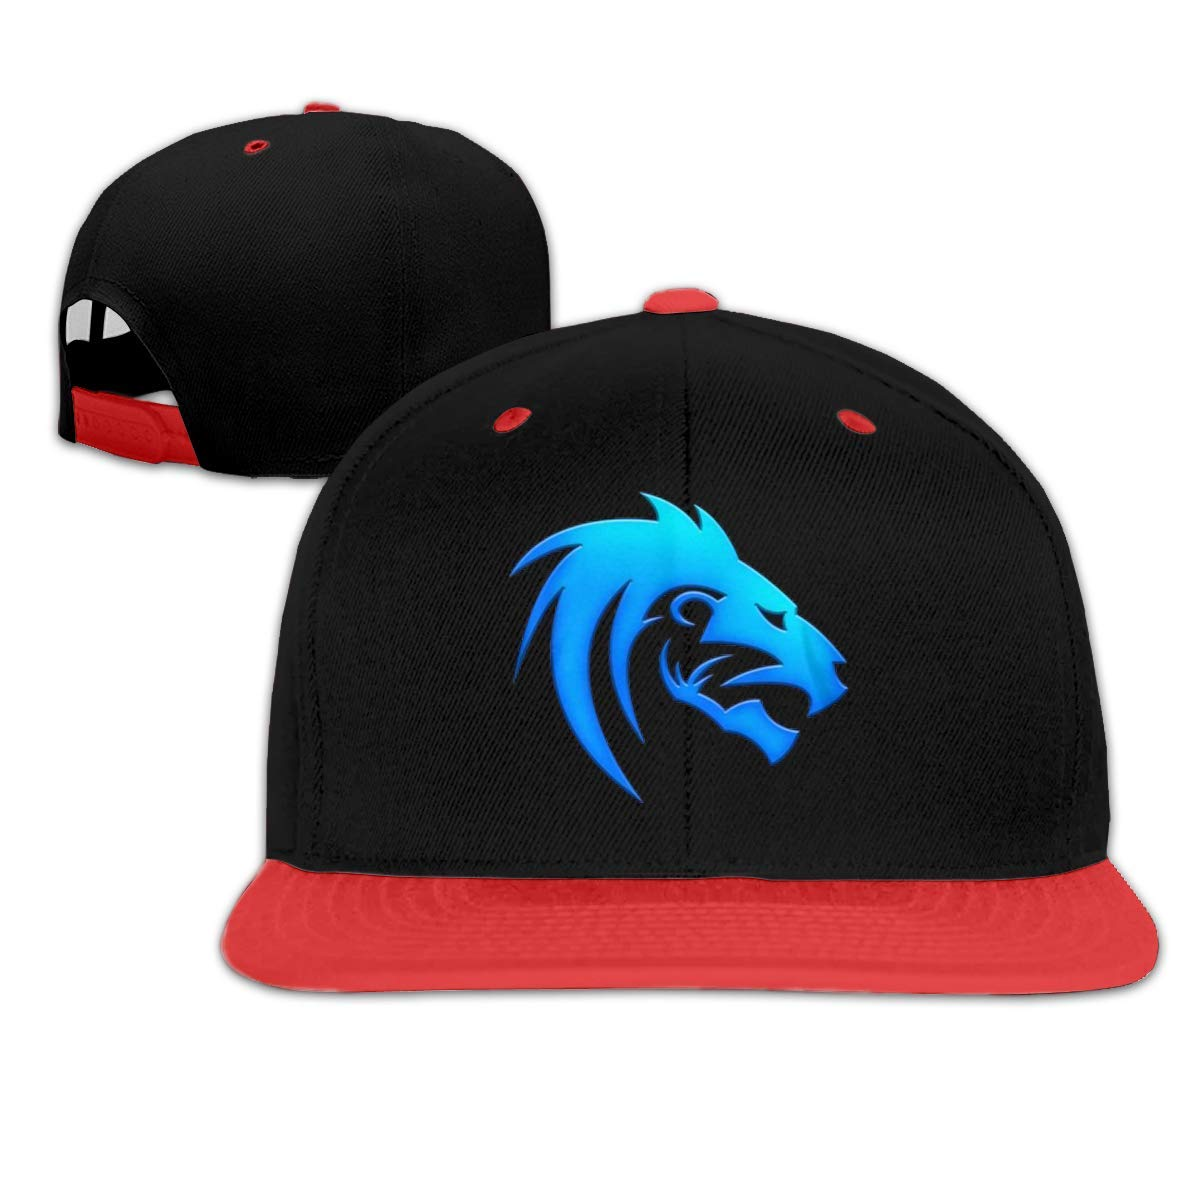 HOMEDAILY Polecat324 Graphics Fashion Cool Baseball Cap Funny Sports Hip Hop Hat